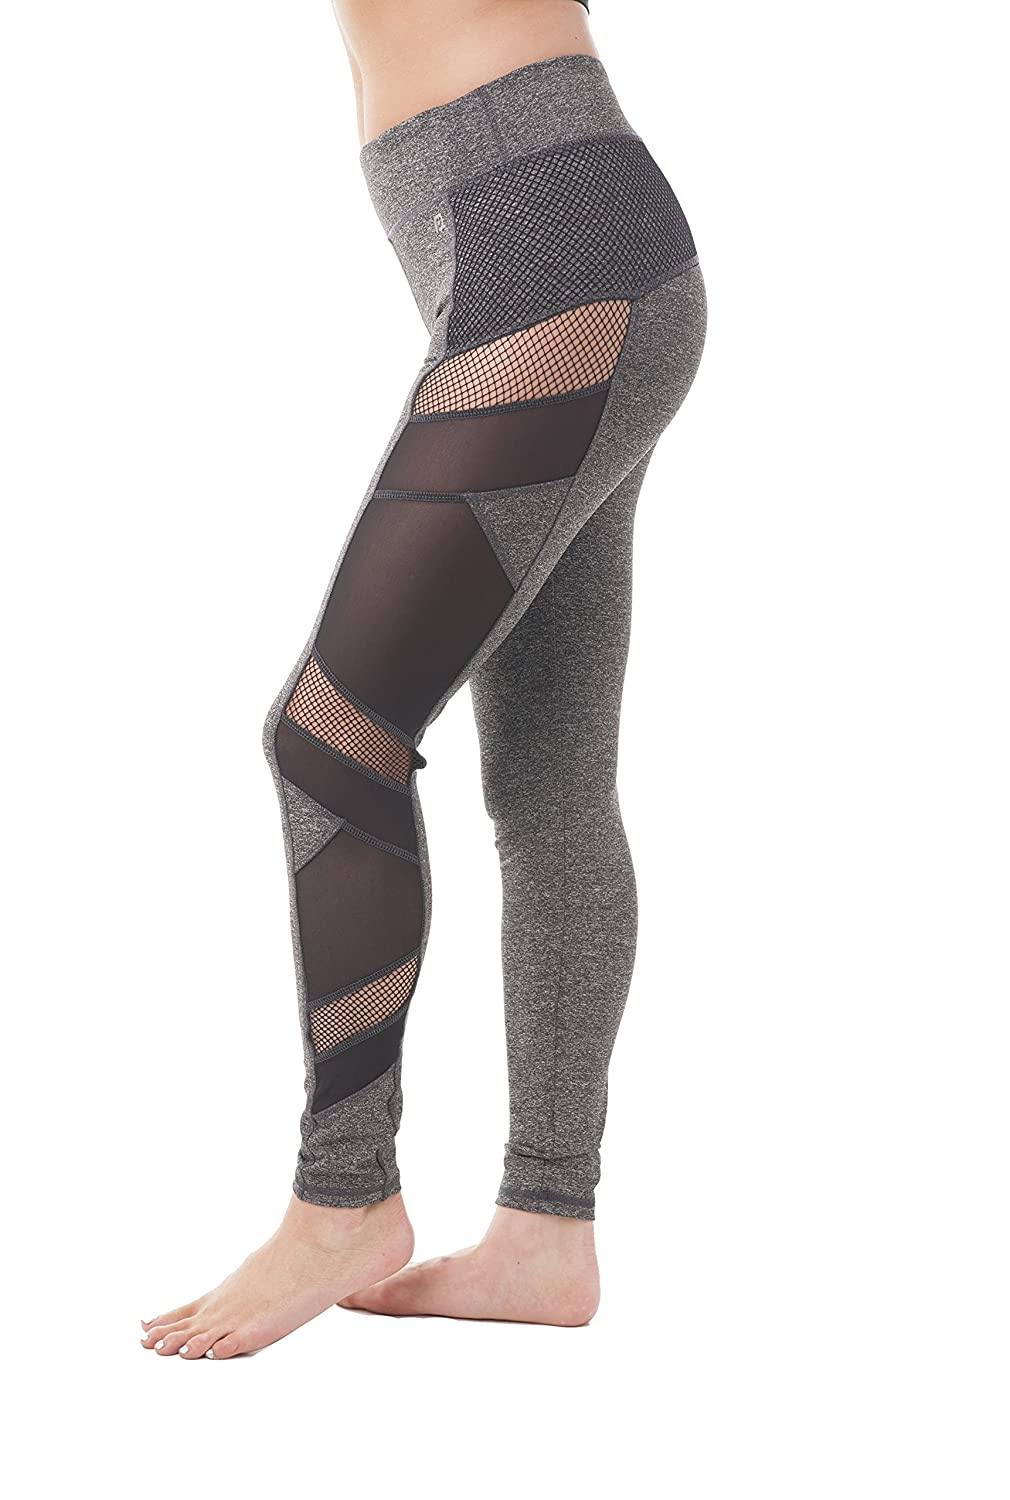 Hollywood Star Fashion Fish Net Mesh Side Active Wear Leggings PC5664